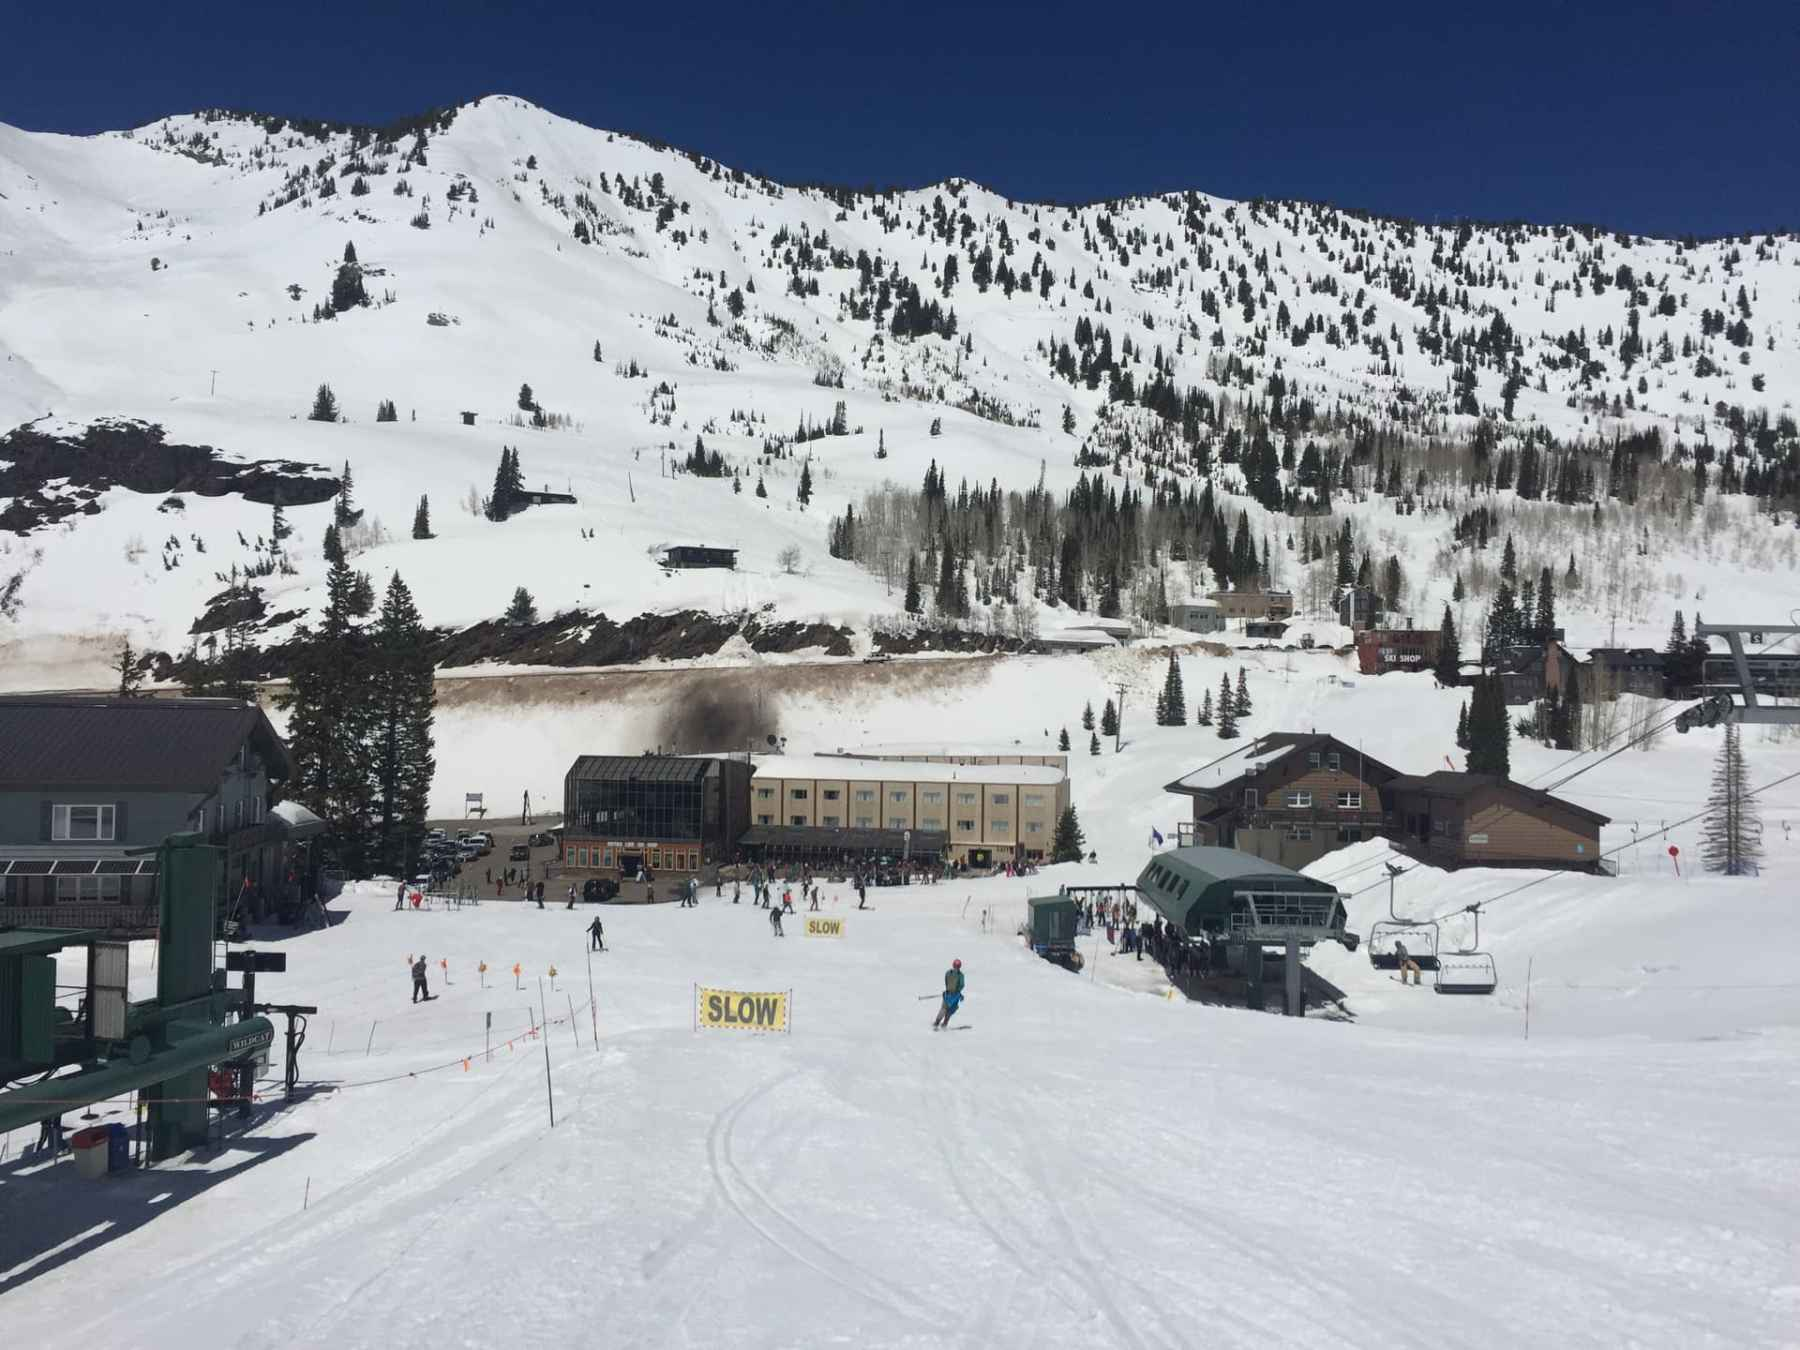 Wildcat Base - Alta Mountain Resort